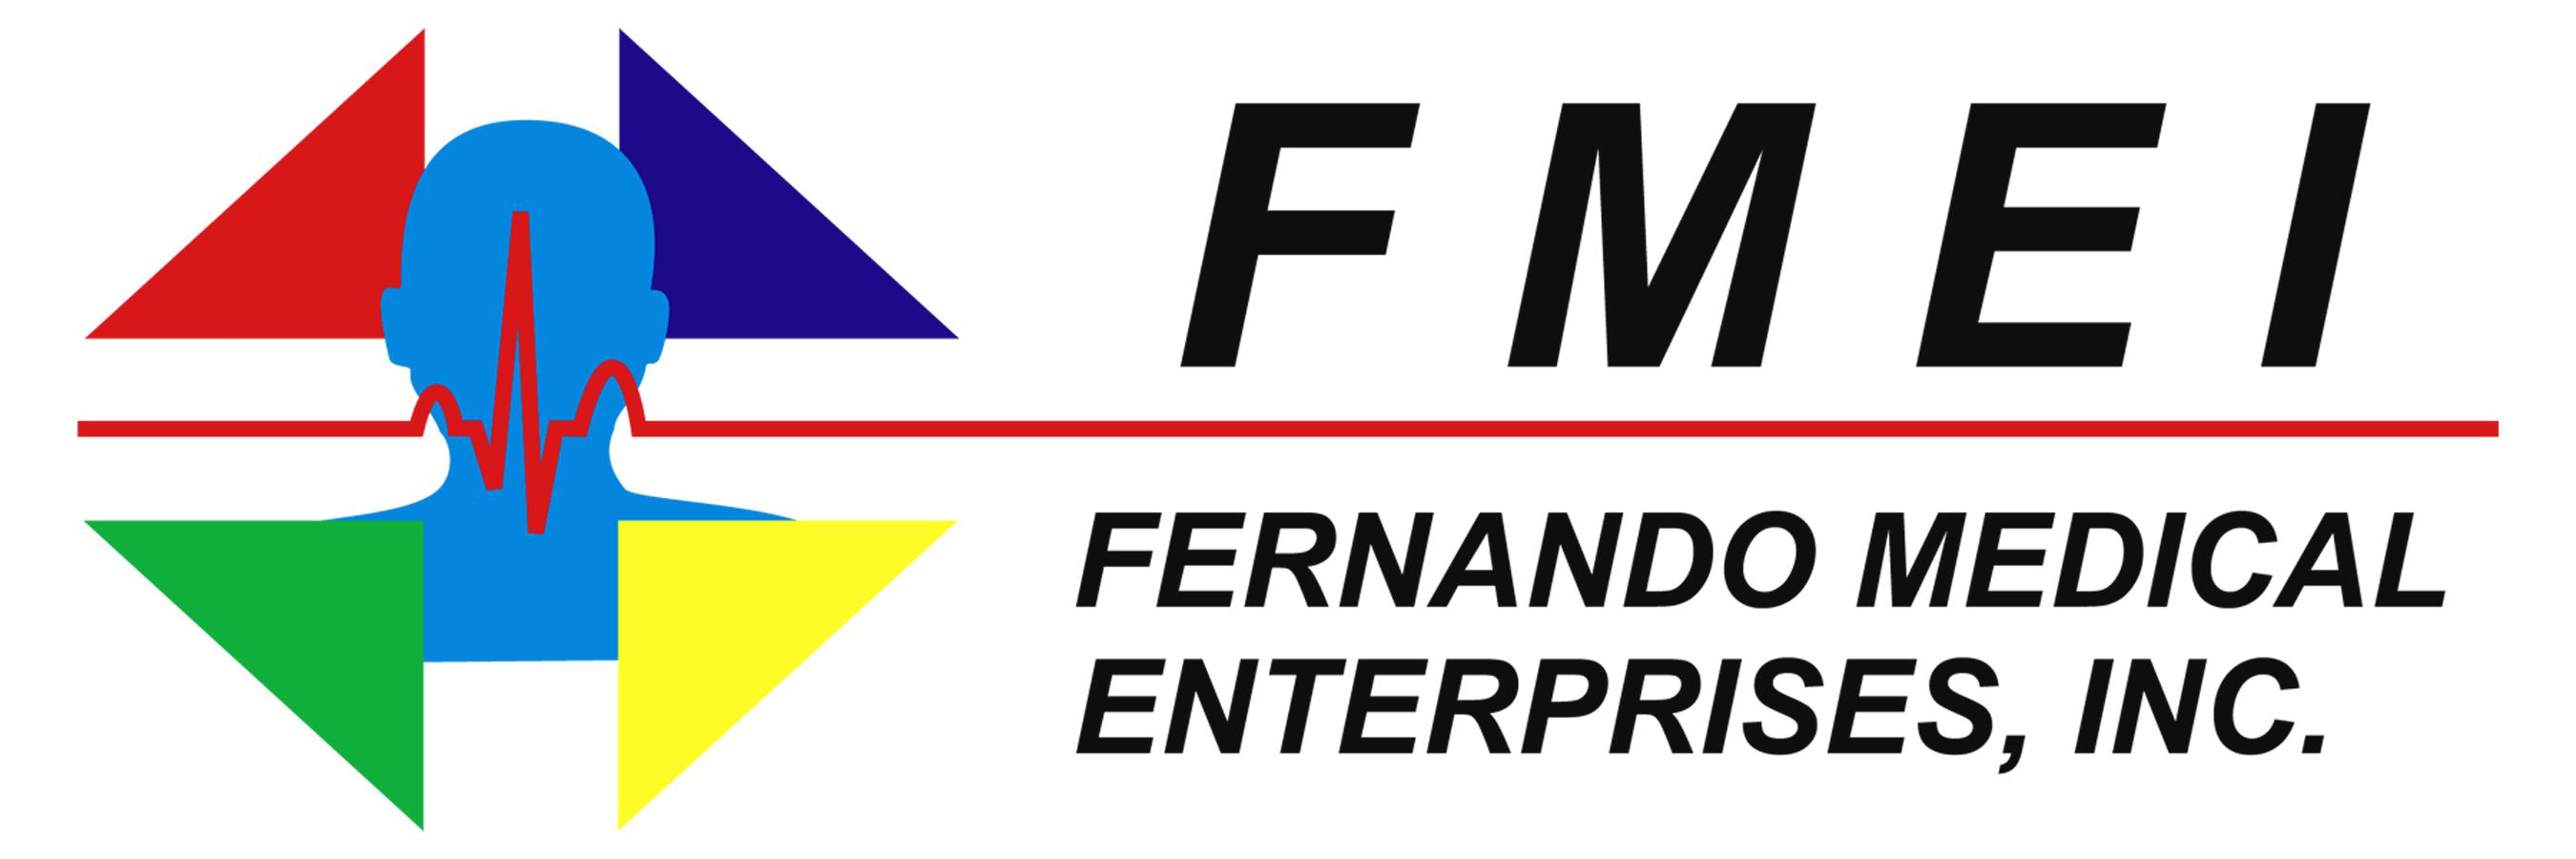 Fernando Medical Enterprises Inc